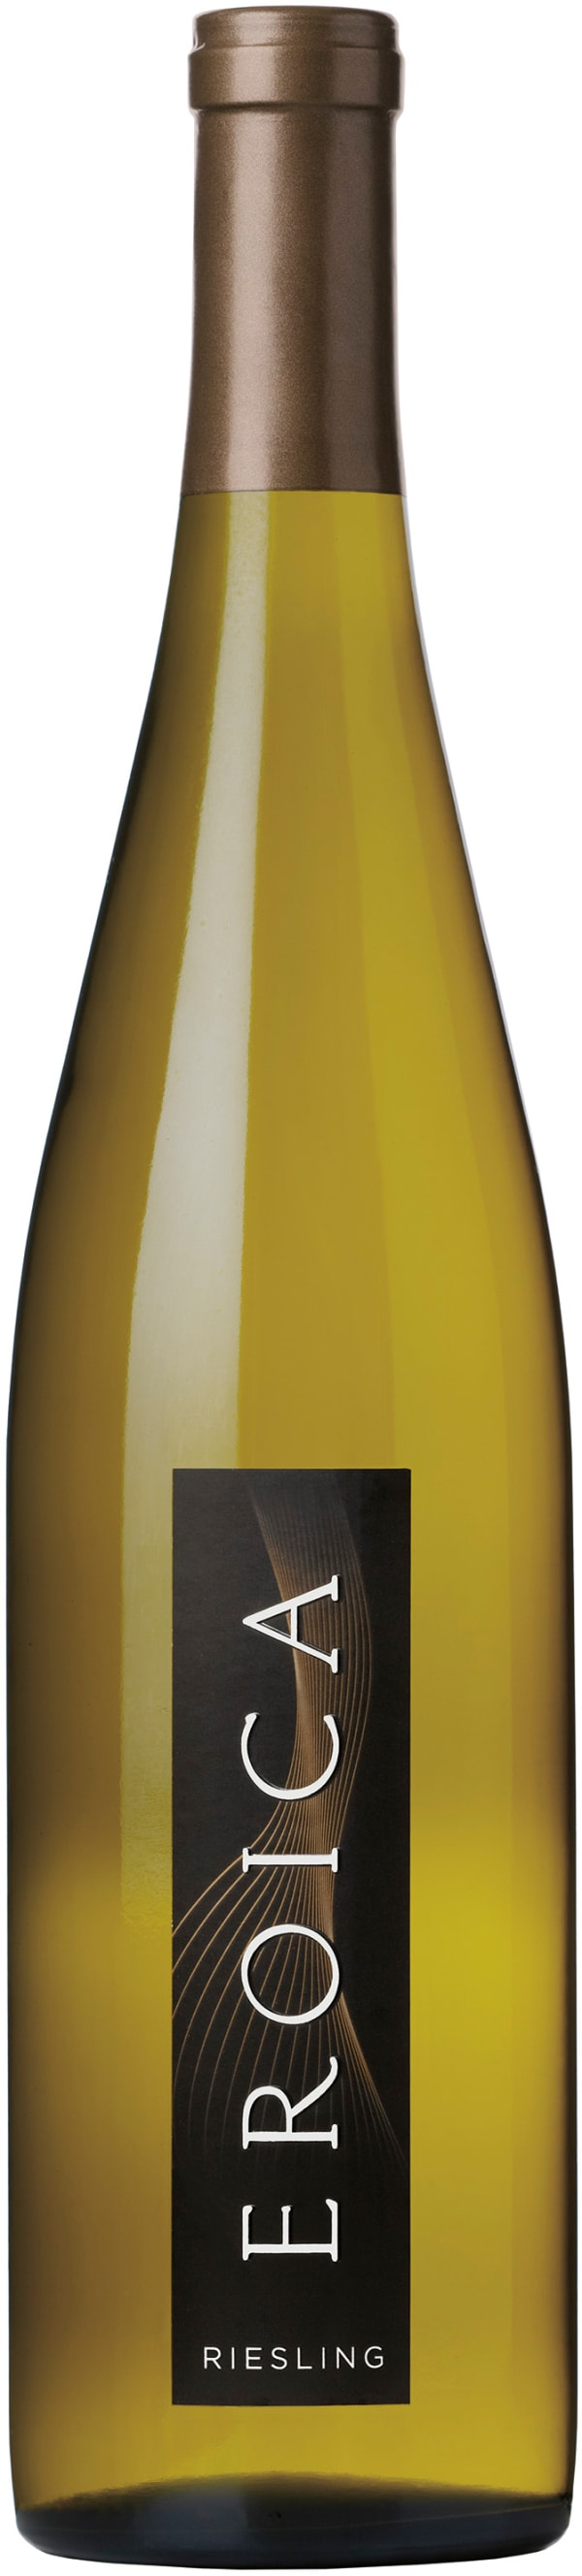 Ste Michelle Eroica Riesling 2017